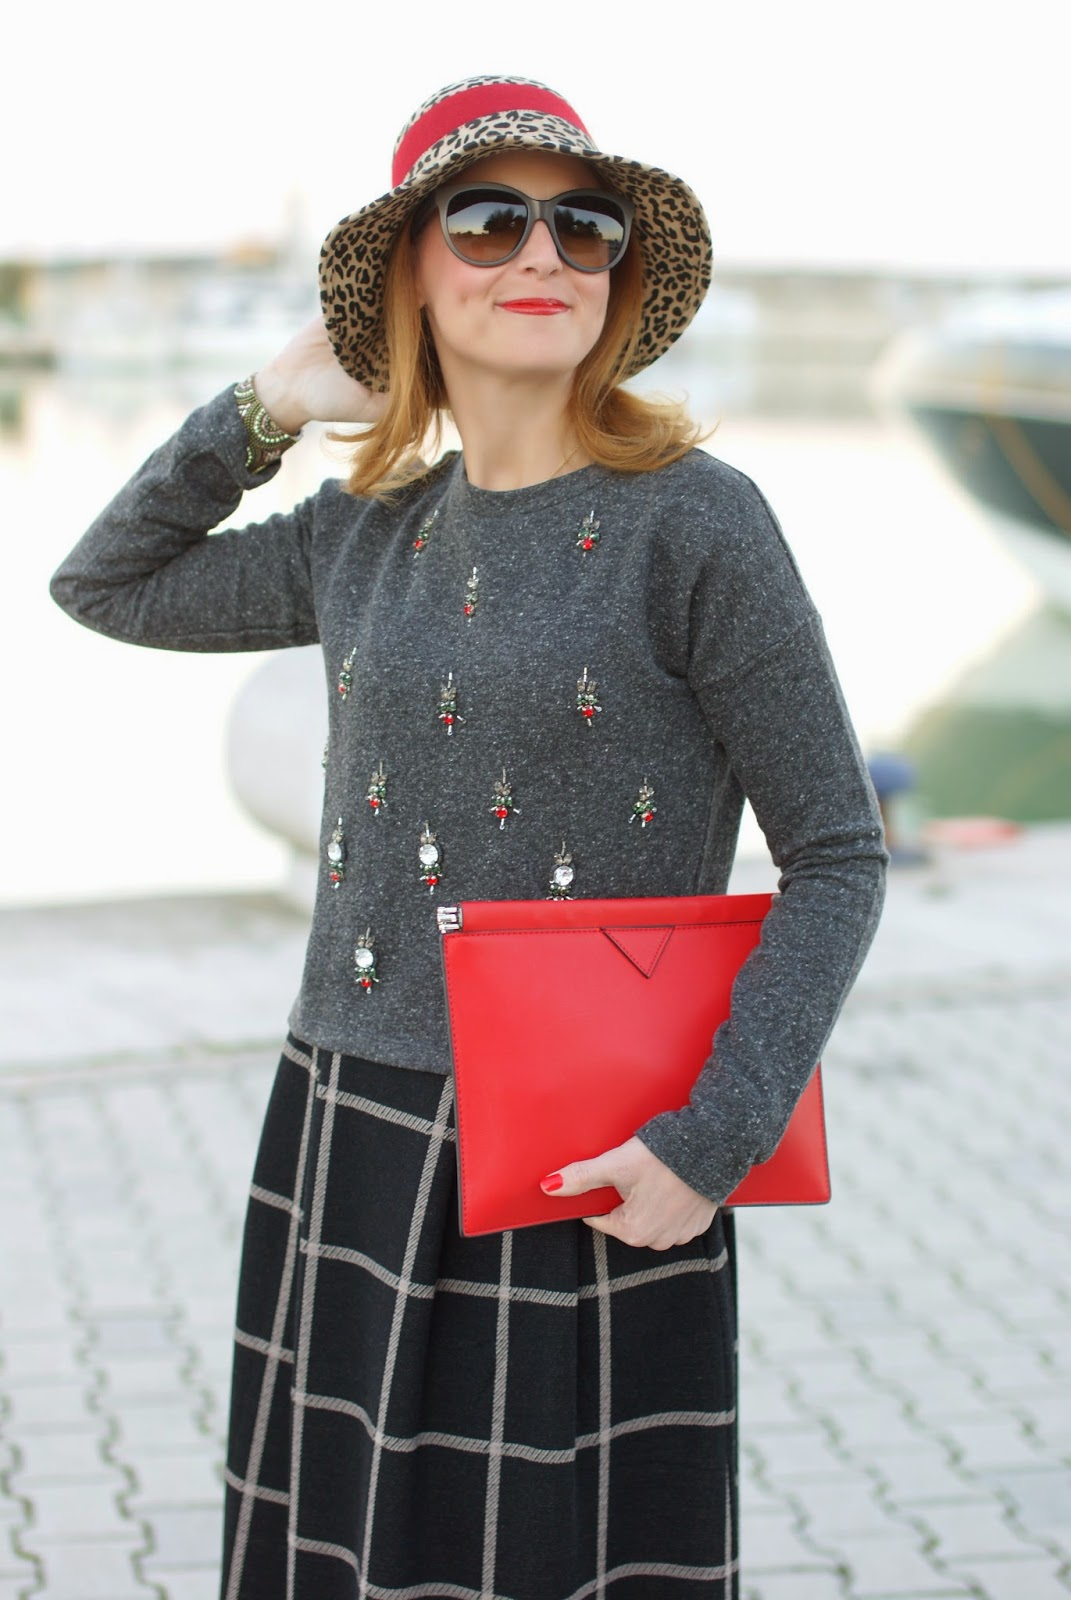 rhinestones sweatshirt, embellished top, check midi skirt, red clutch, Fashion and Cookies, fashion blogger